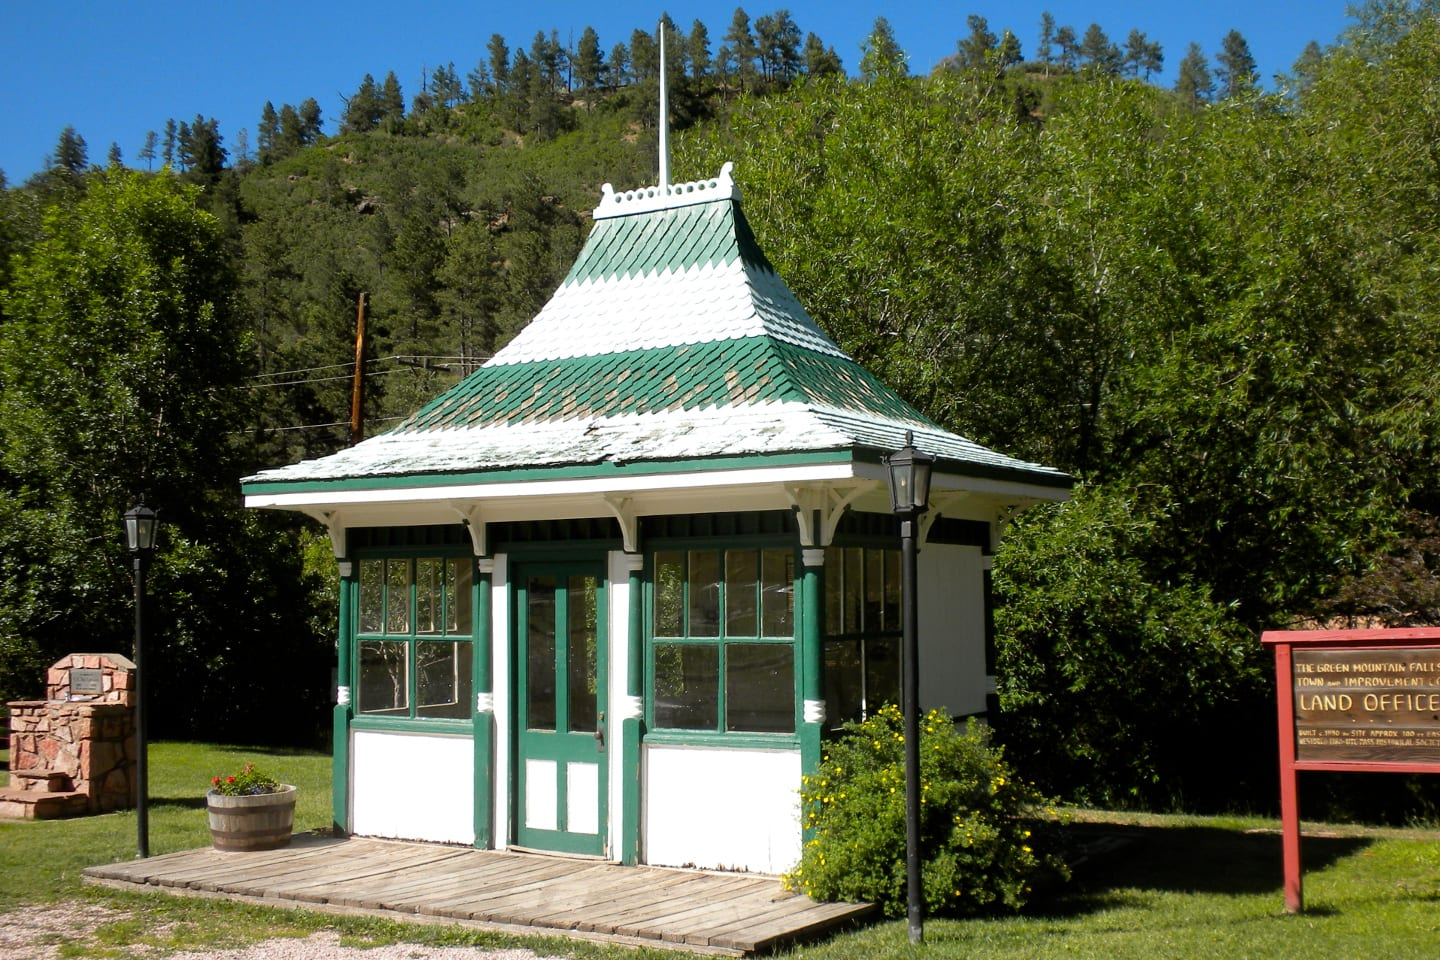 Green Mountain Falls Historic Land Office